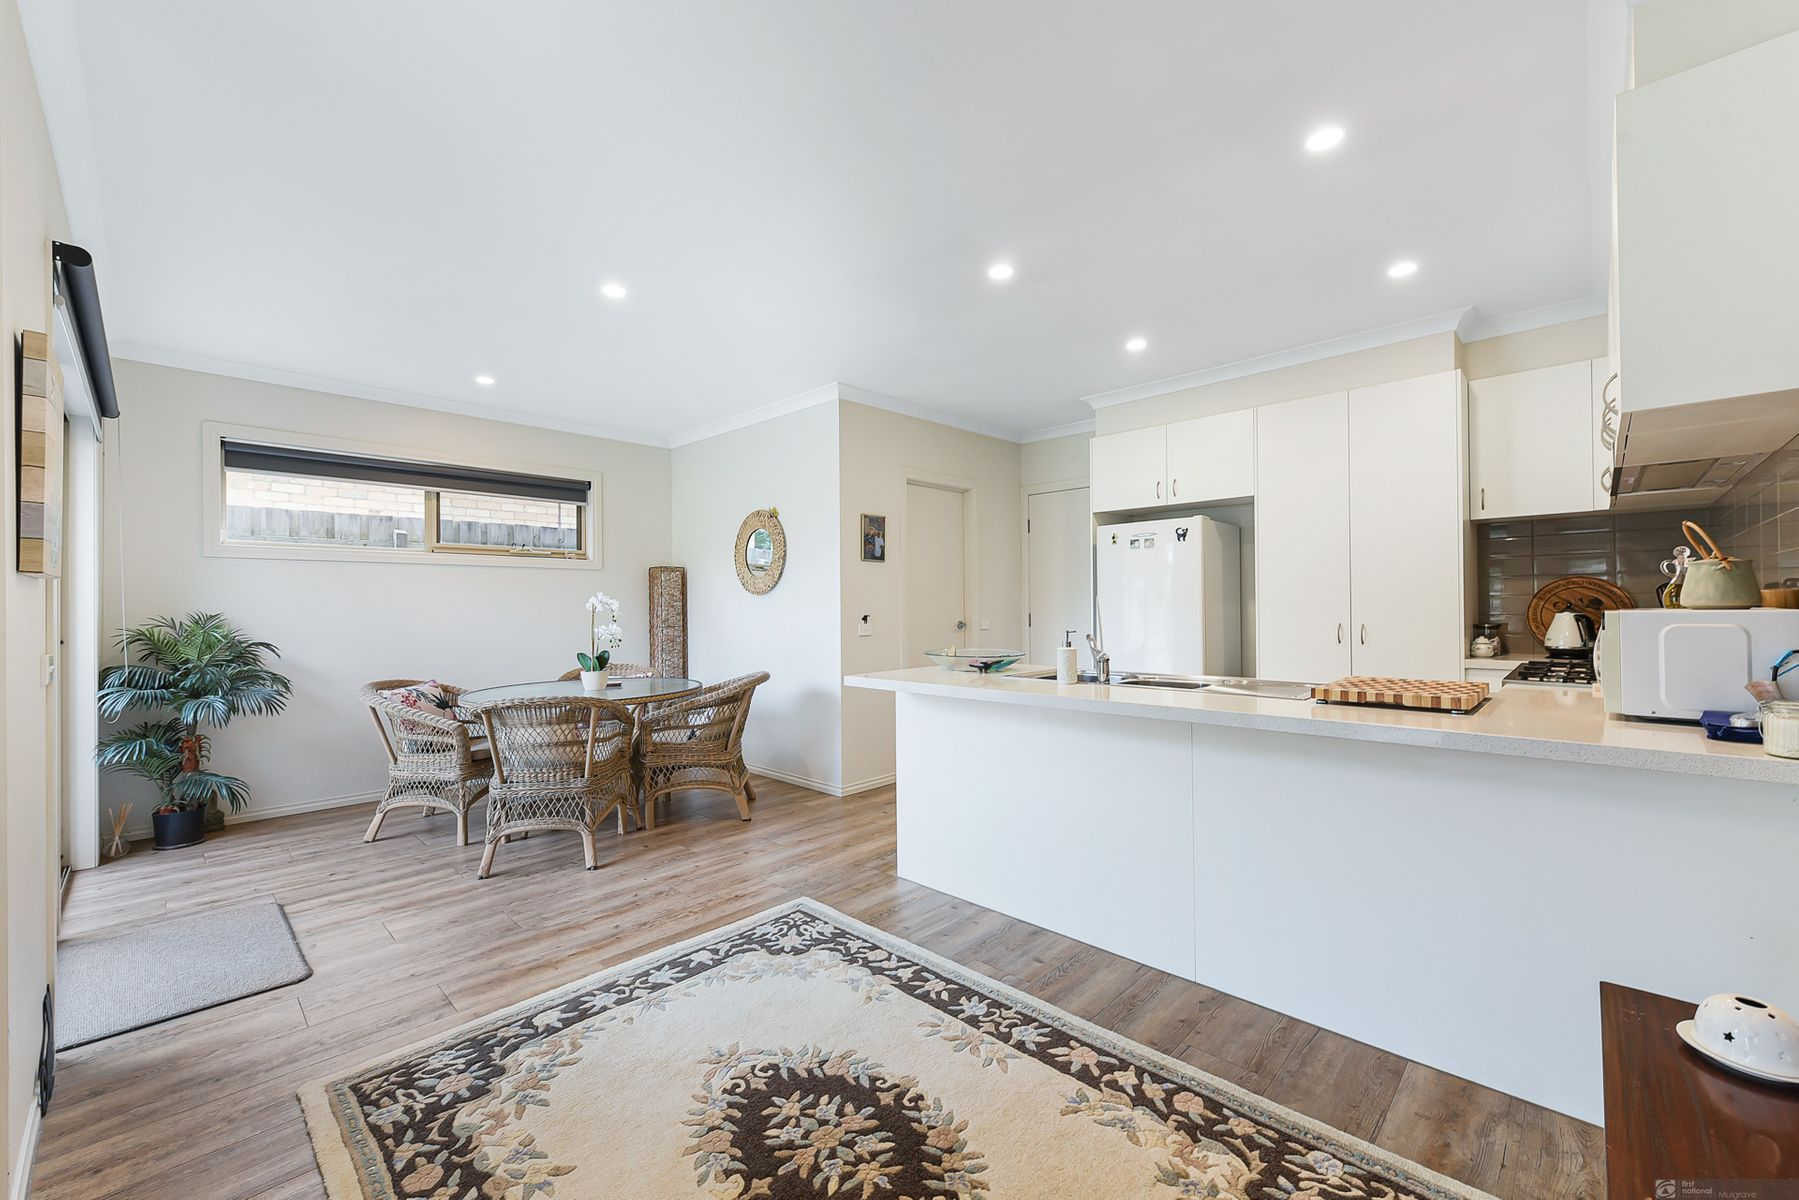 1/6 Souter Street, Beaconsfield, VIC 3807